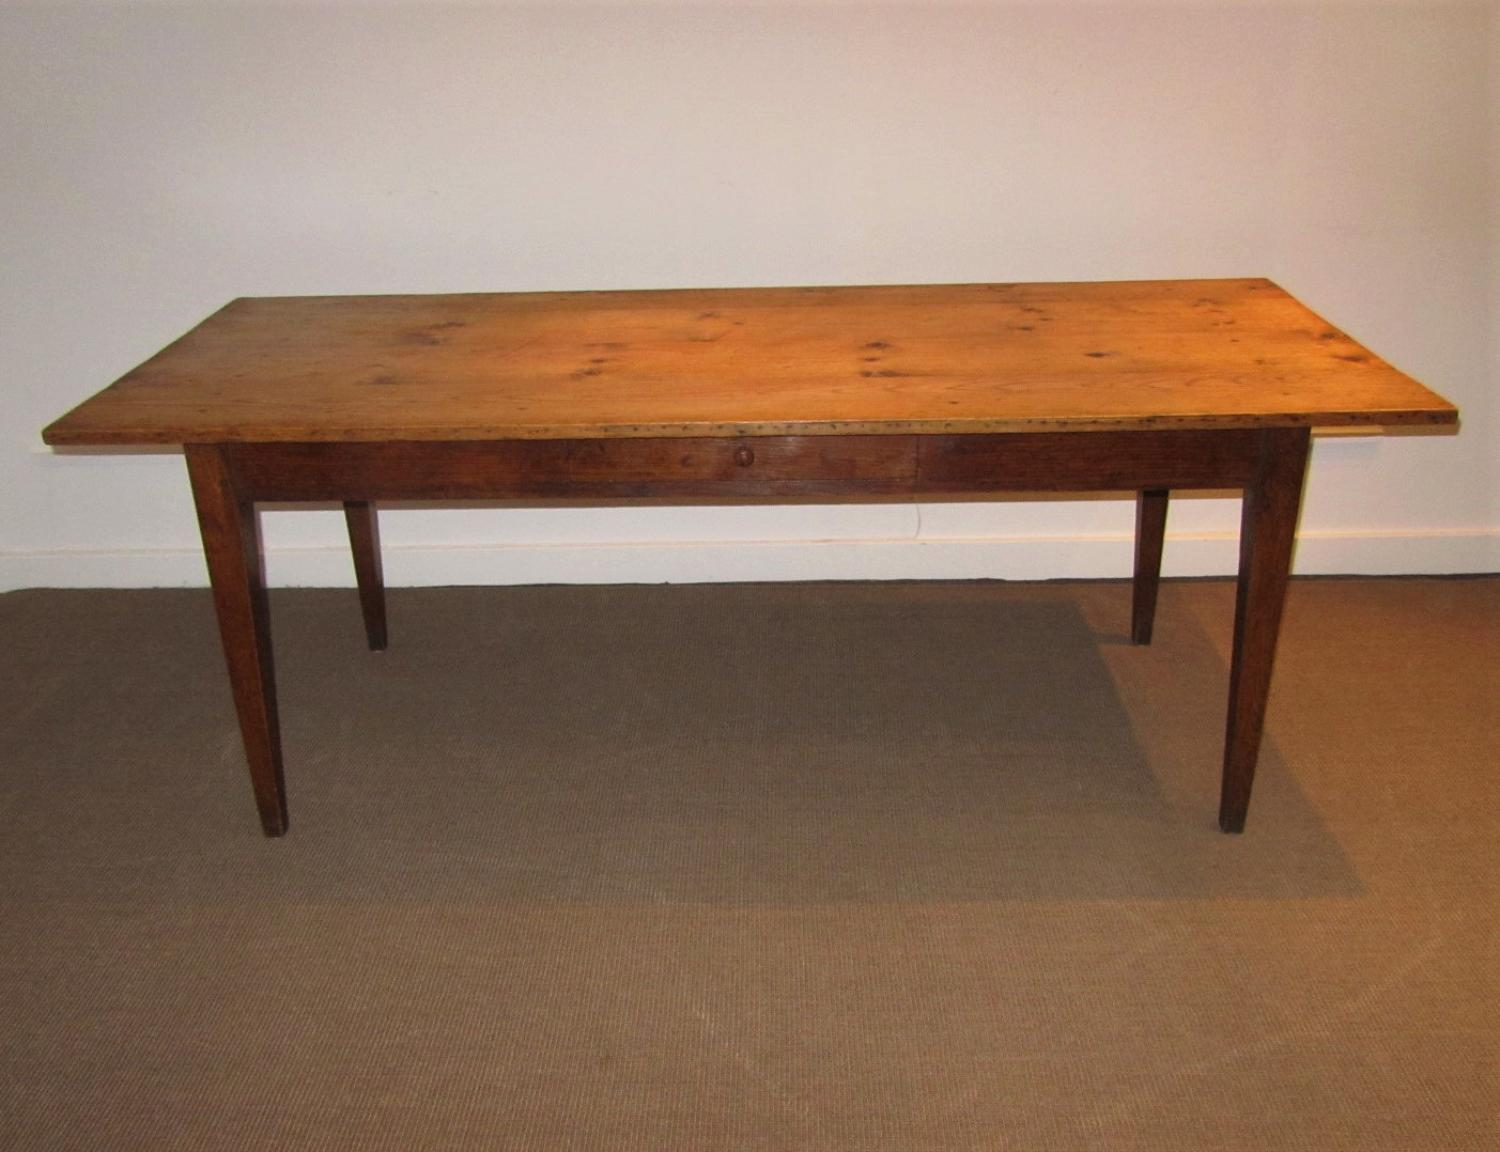 A 19thC French farmhouse table